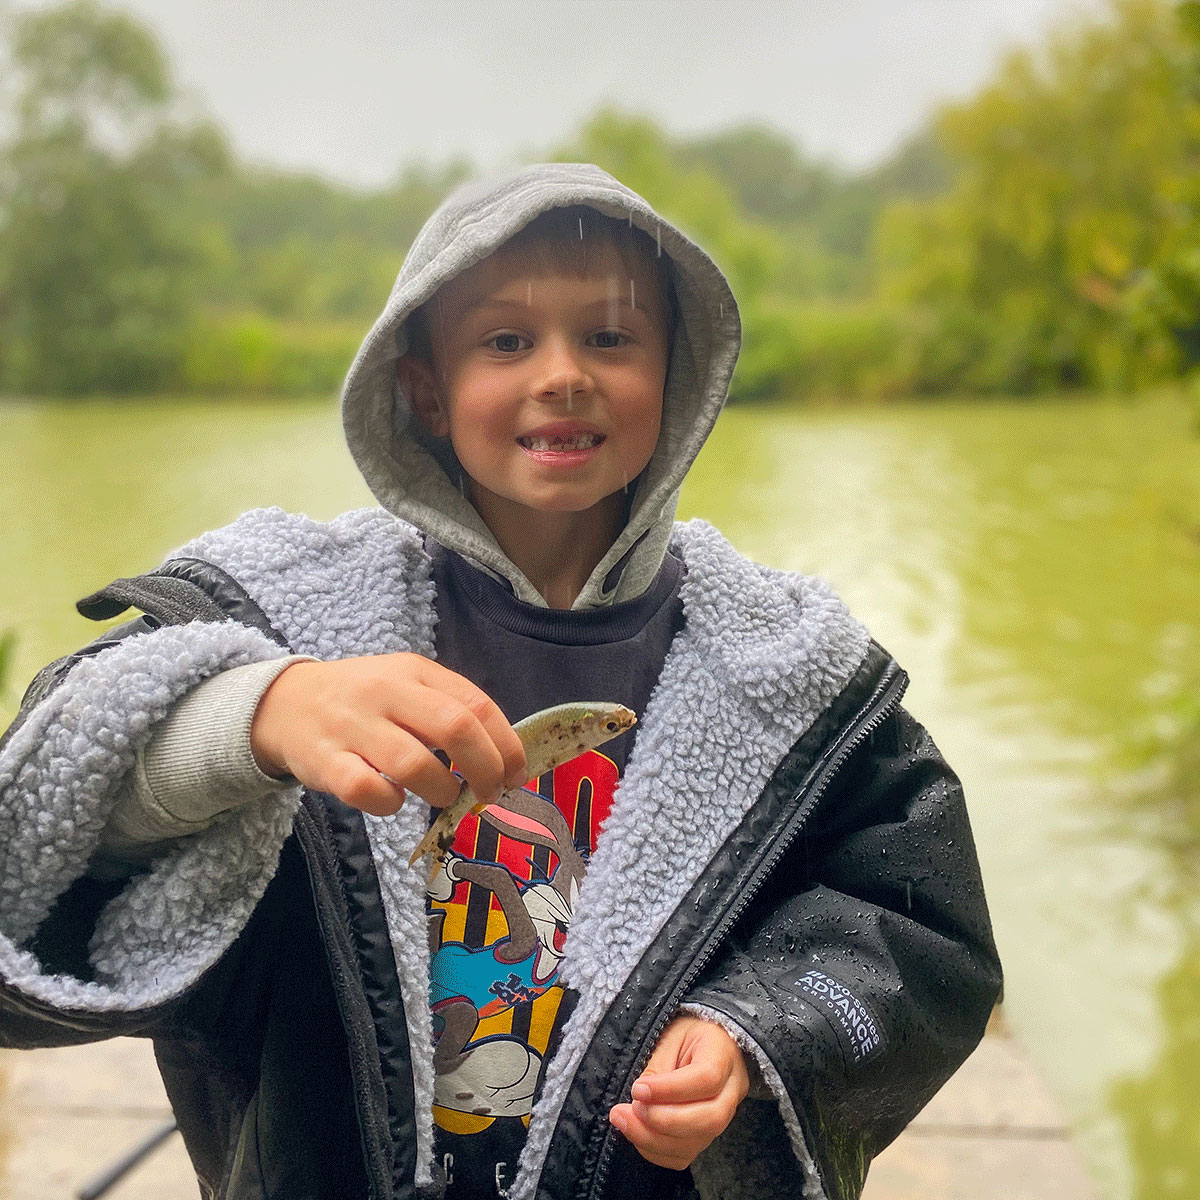 Sumners Ponds Campsite Review Staycation UK, small child catches a fish